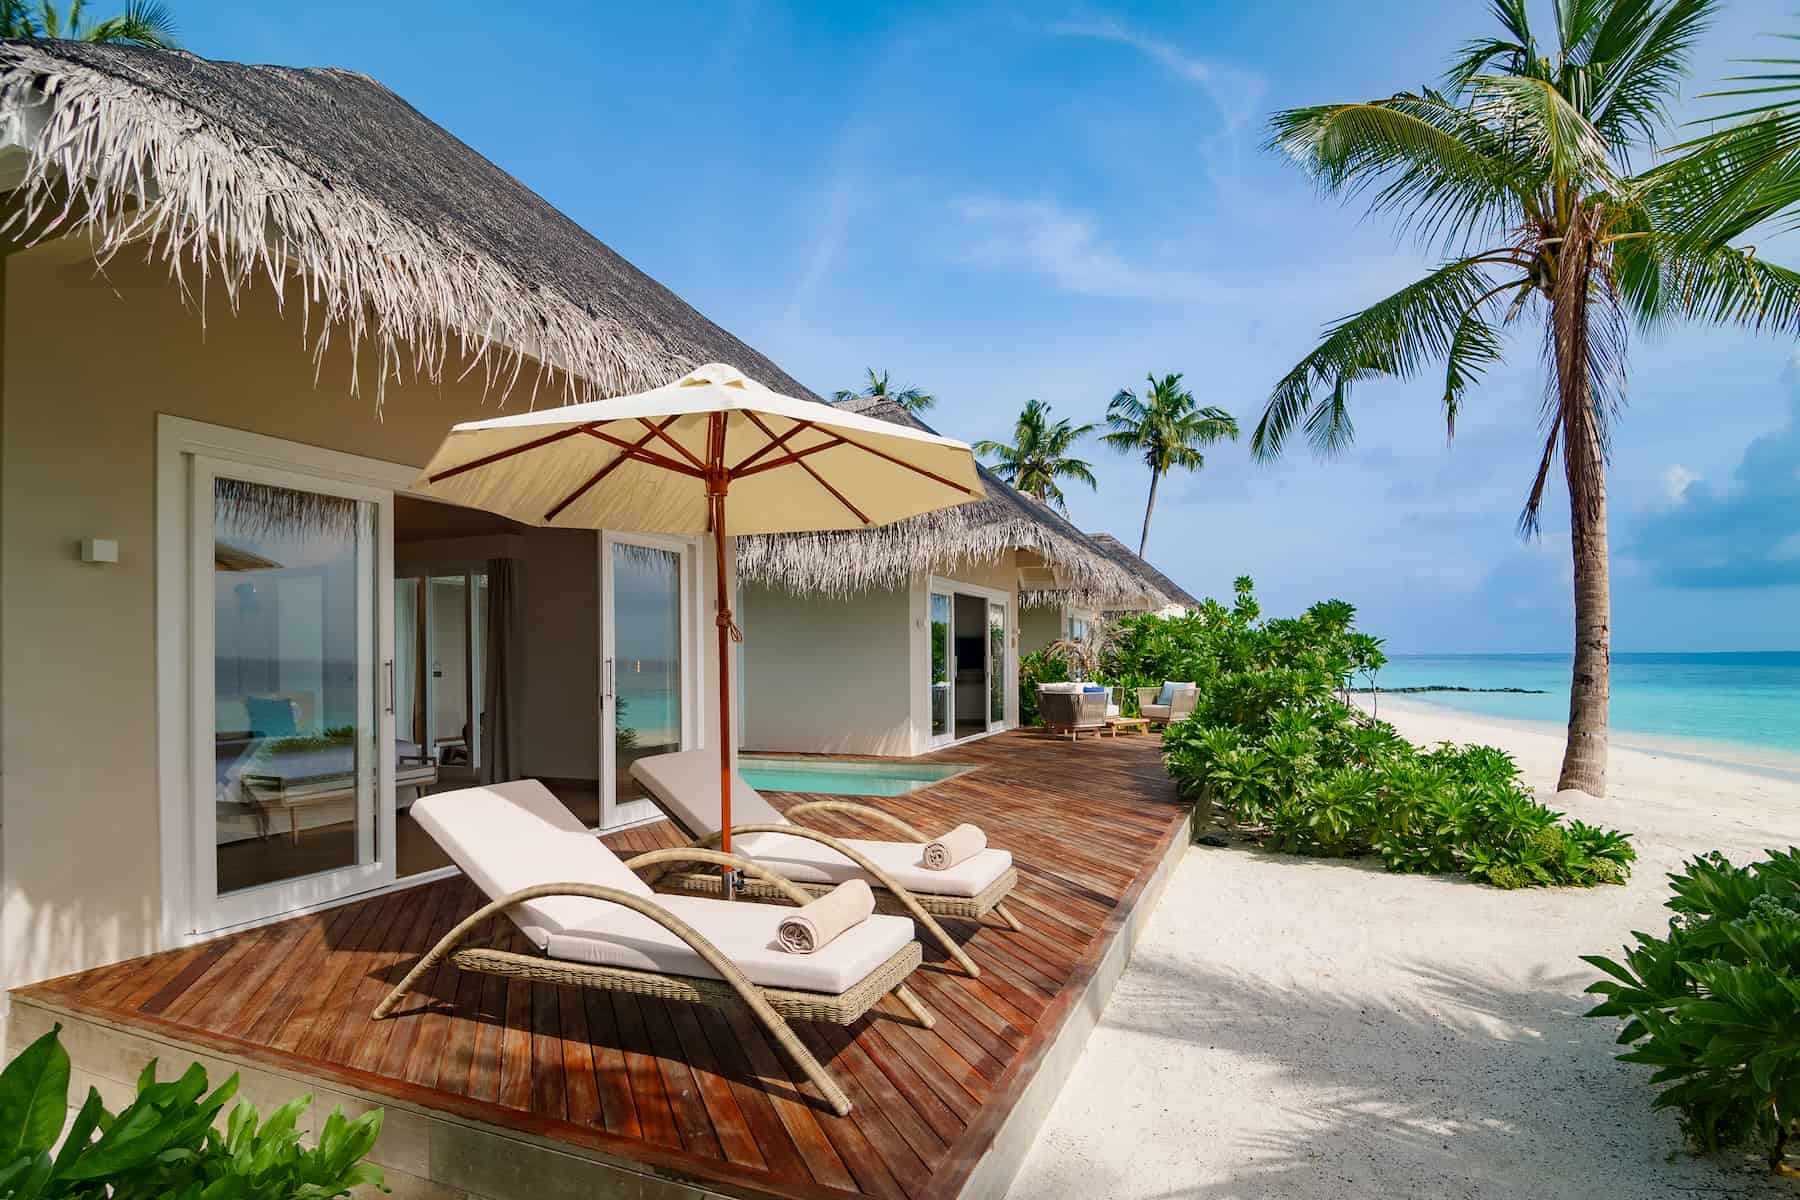 Resort Maldive Baglioni Resort Grand Beach Villa